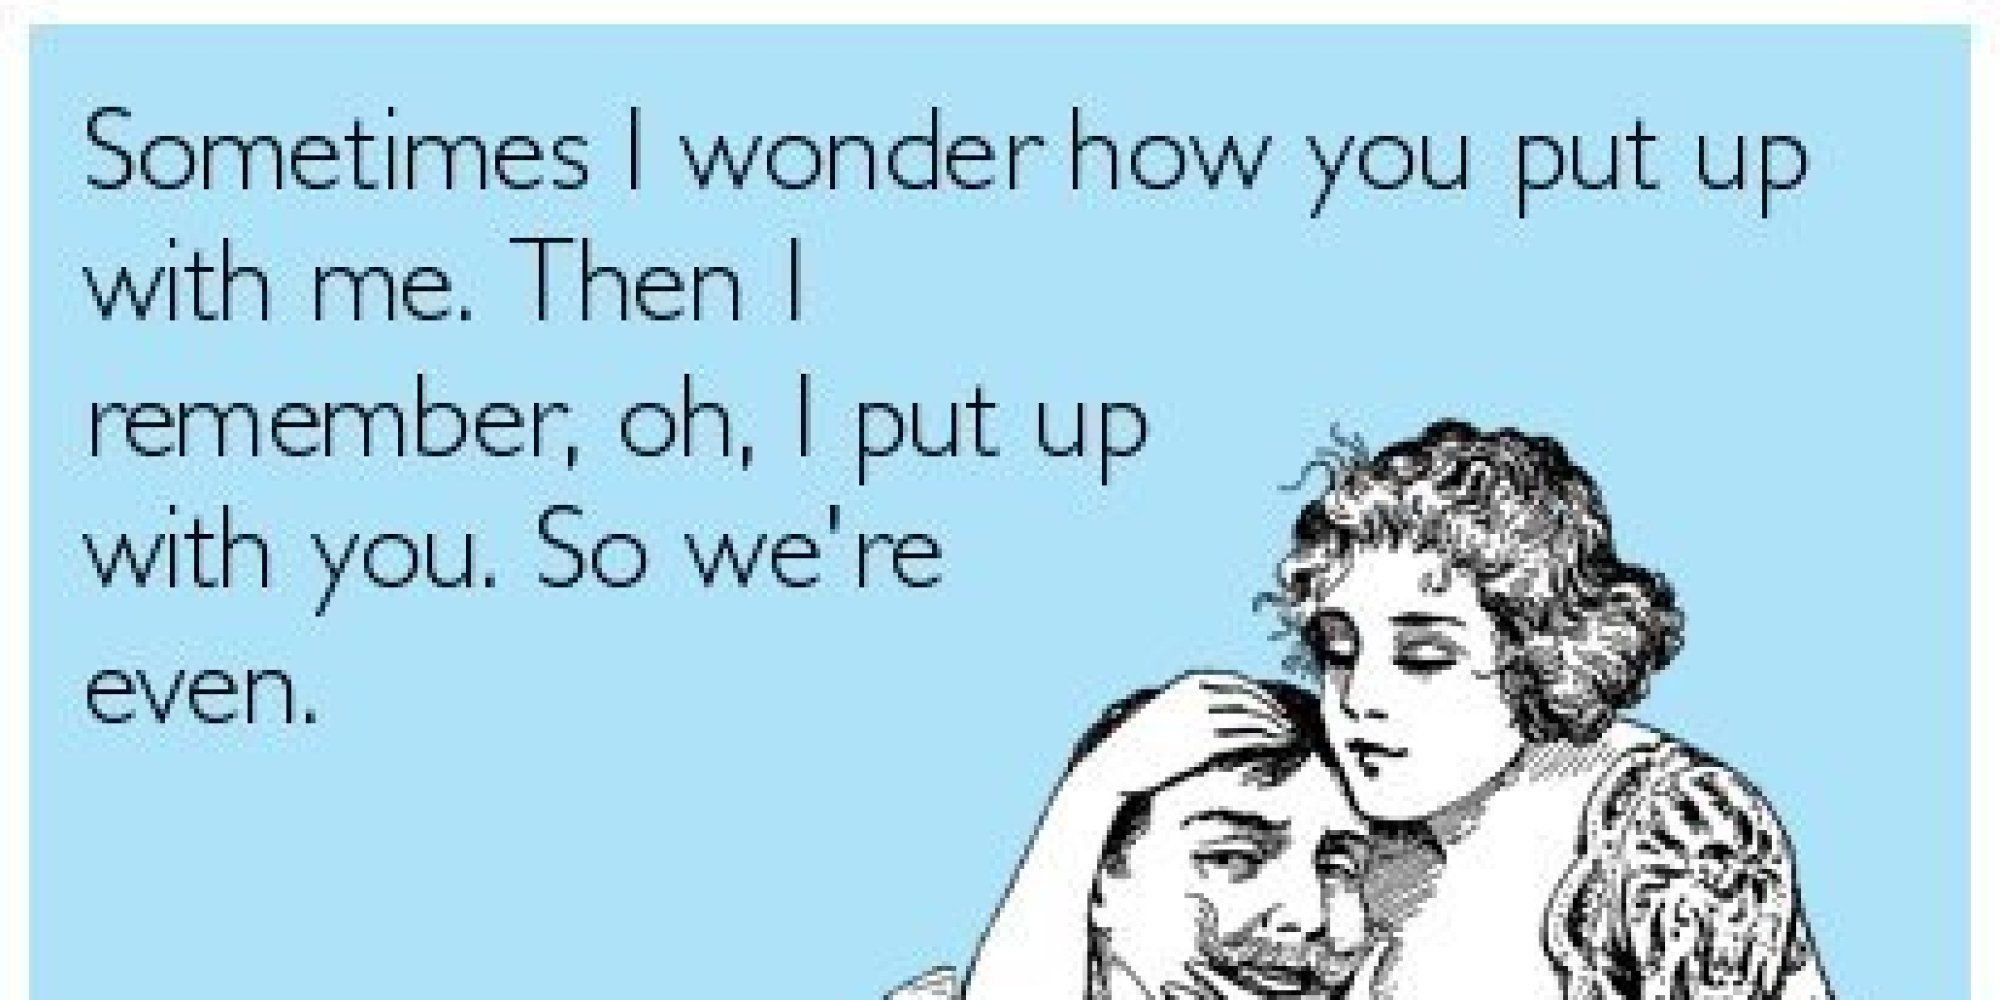 15 Brutally Honest Cards For Couples With A Sense Humor